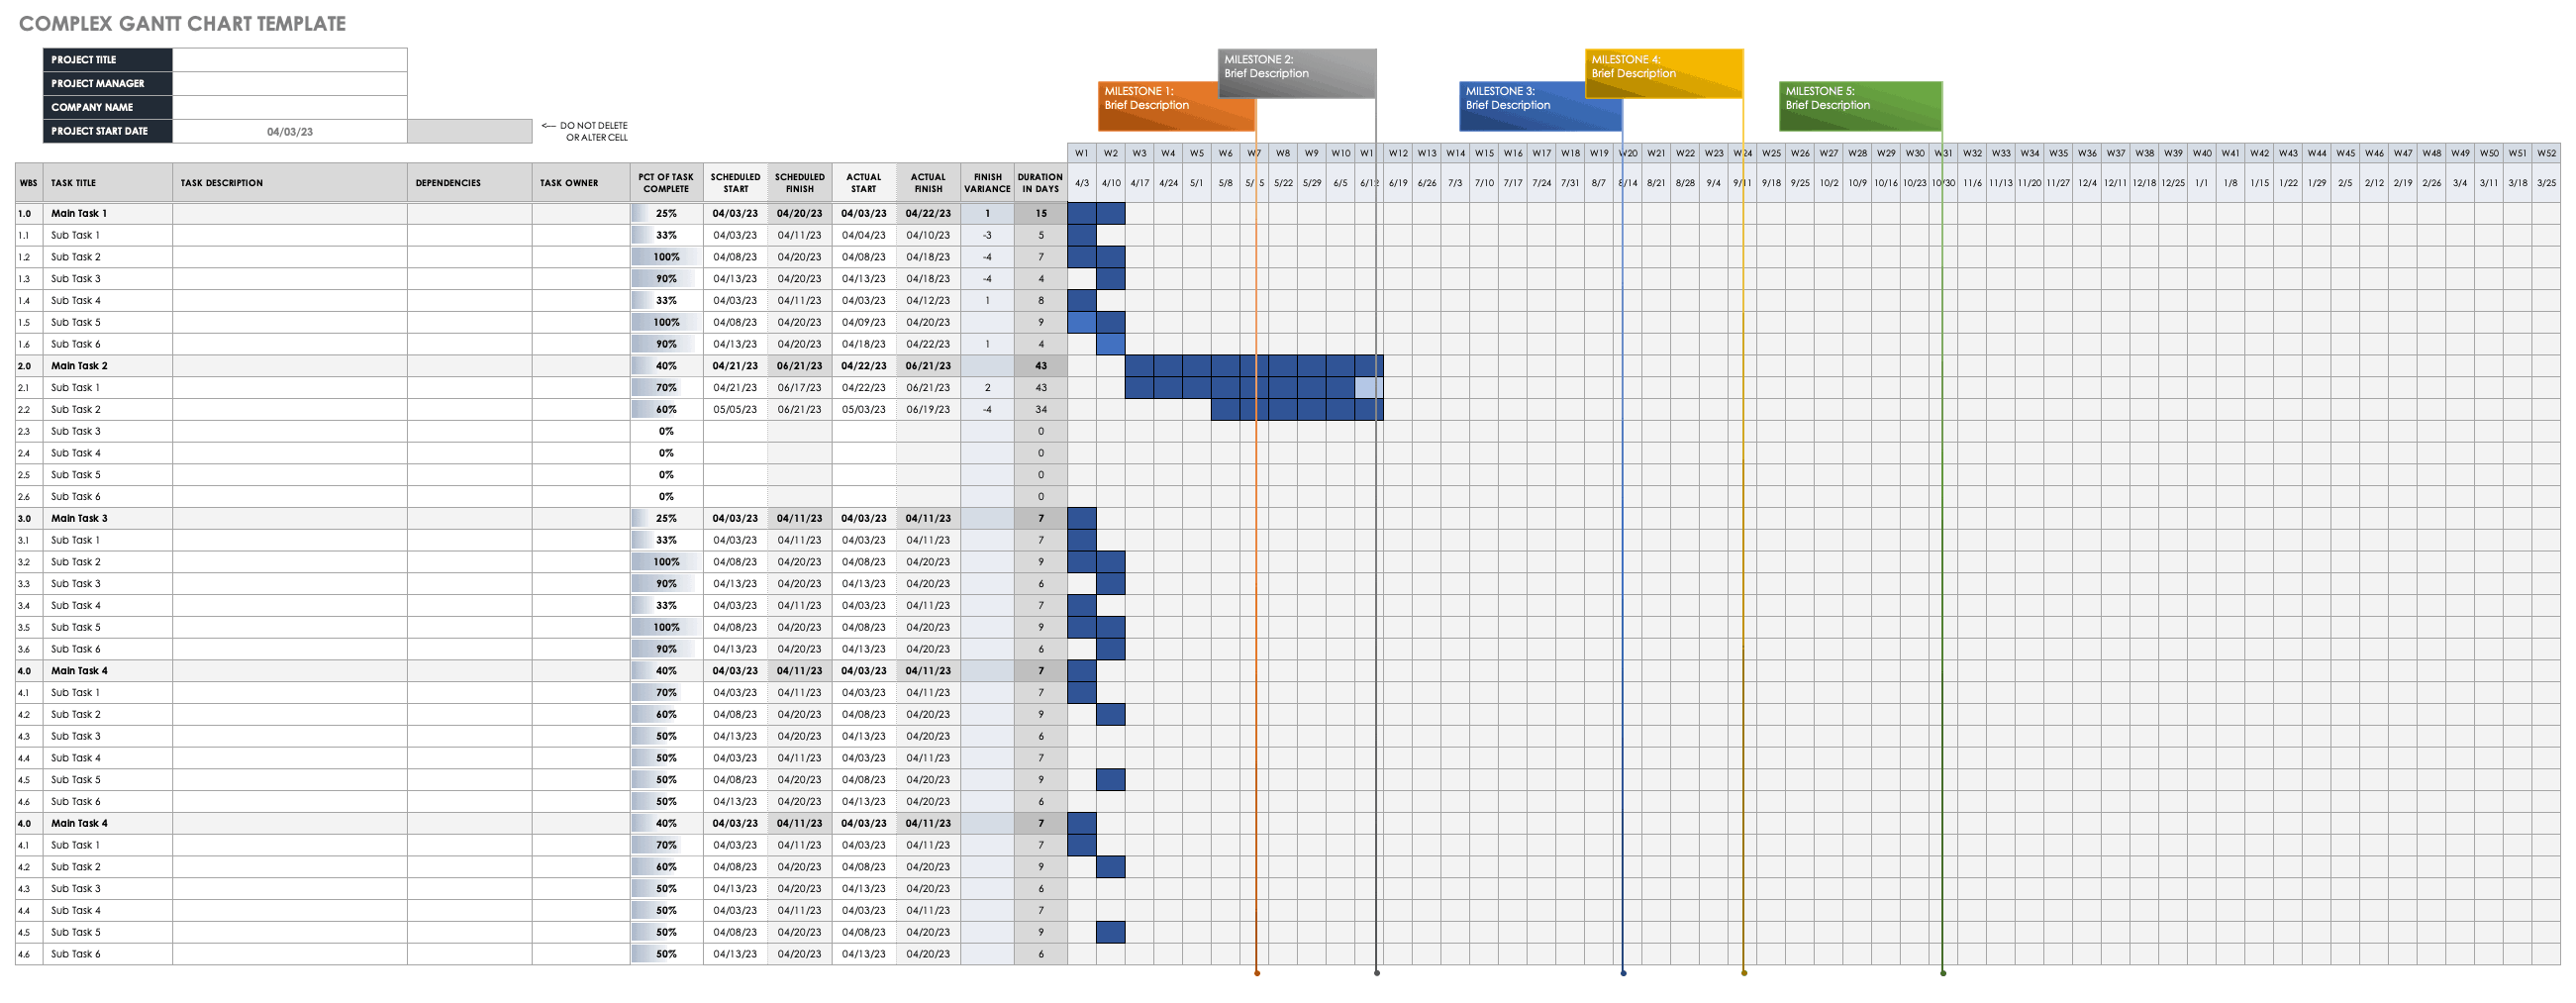 Share the gantt chart in excel with your project … Free Gantt Chart Templates In Excel Other Tools Smartsheet